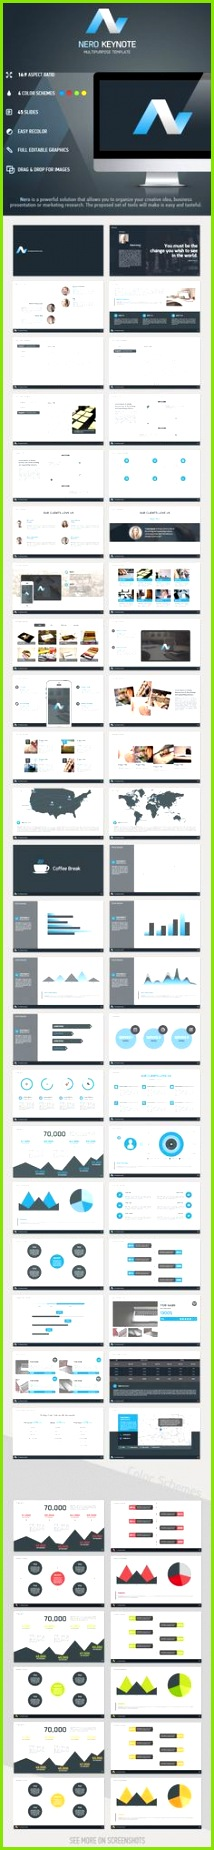 Premium Presentations Template for Keynote and Powerpoint